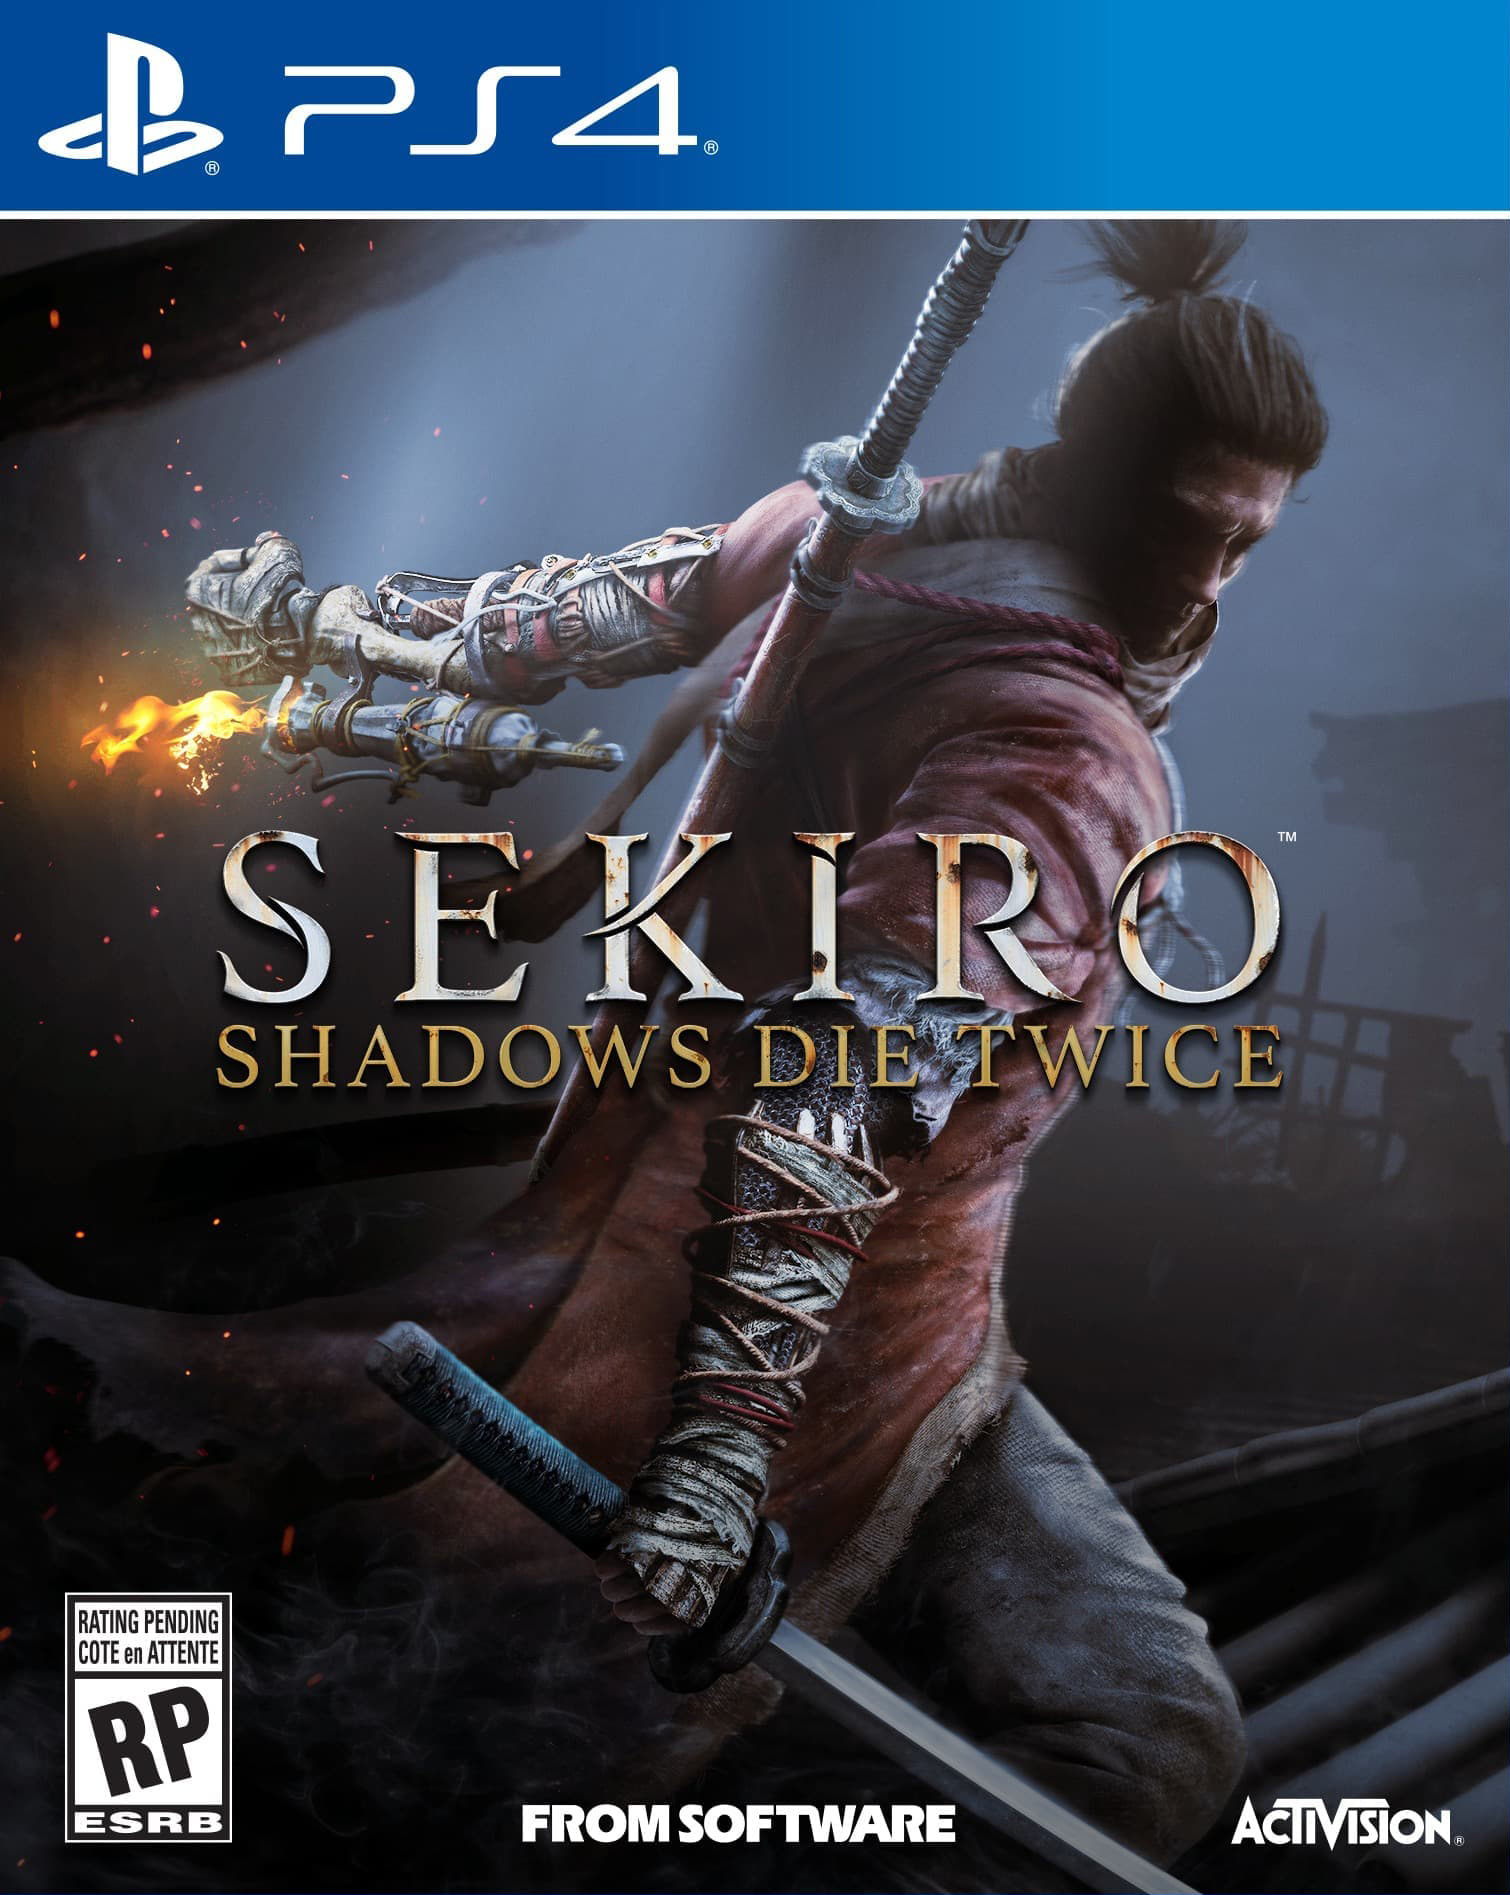 Sekiro: Shadows Die Twice [PS4] 5.05 / 6.72 / 7.02 [EUR] (2019) [Русский] (v1.04)